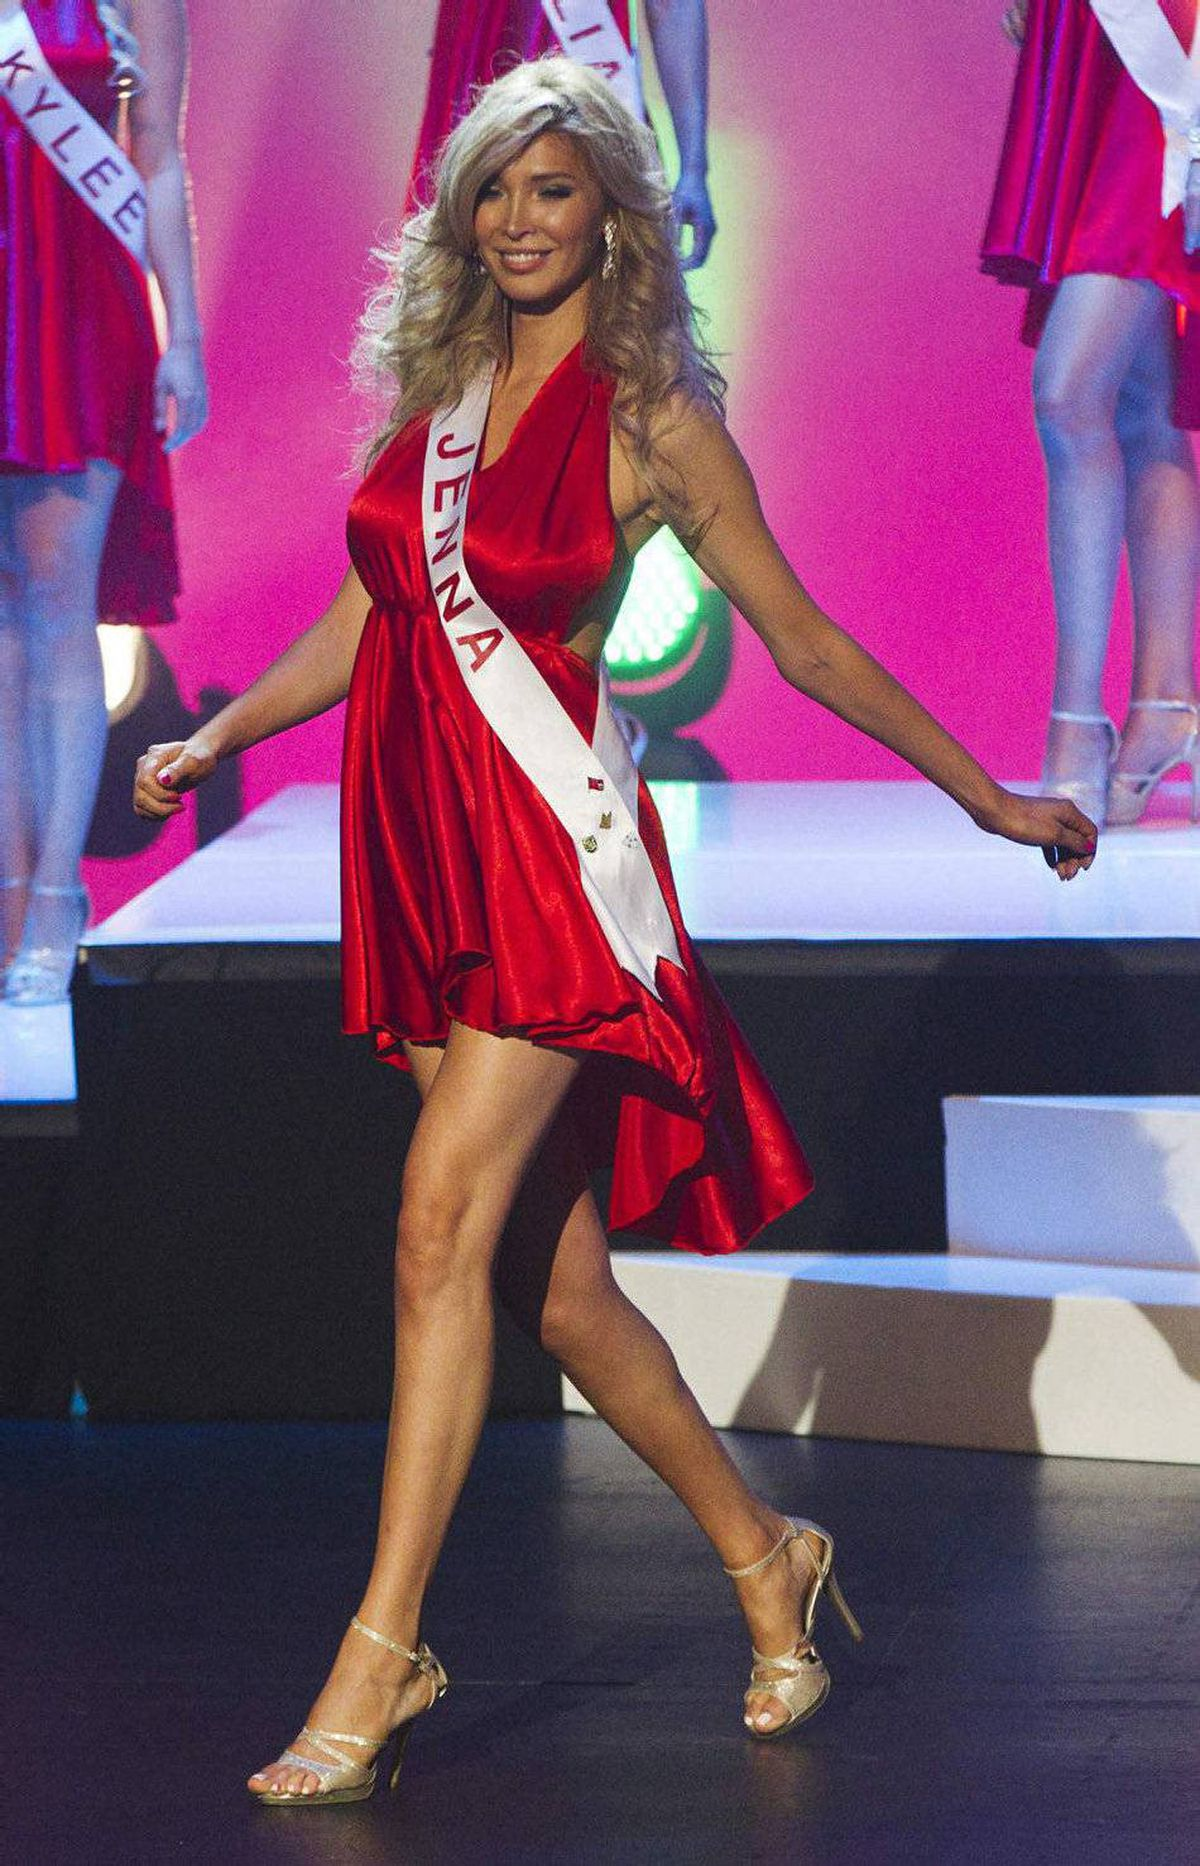 Jenna Talackova takes part in Miss Universe Canada competition in Toronto May 17, 2012.